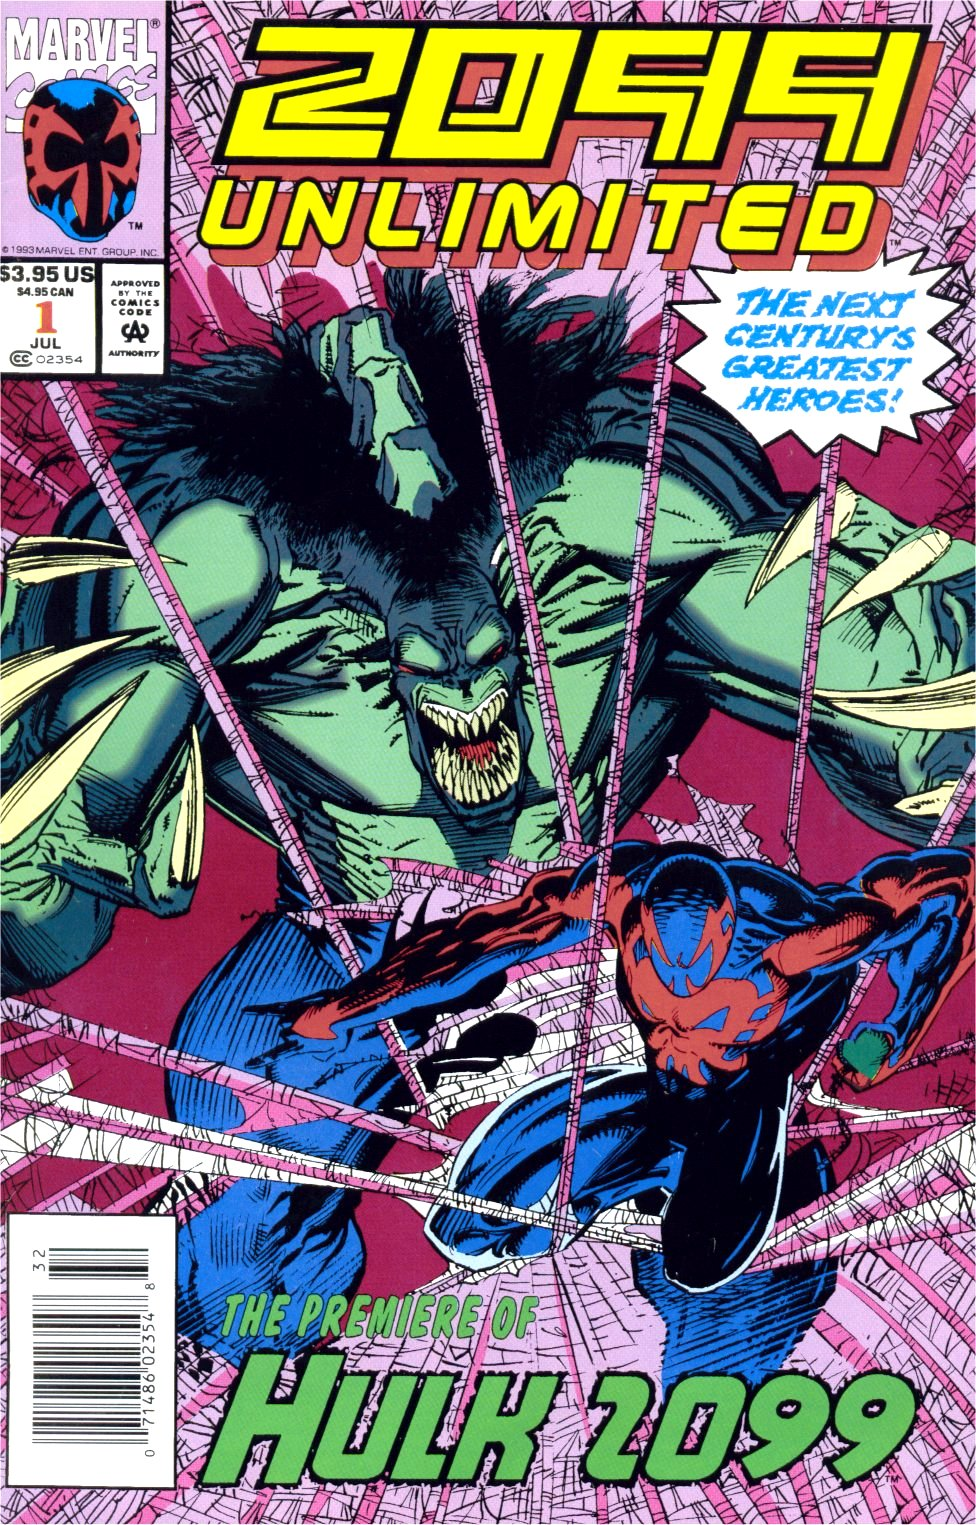 Read online 2099 Unlimited comic -  Issue #1 - 1